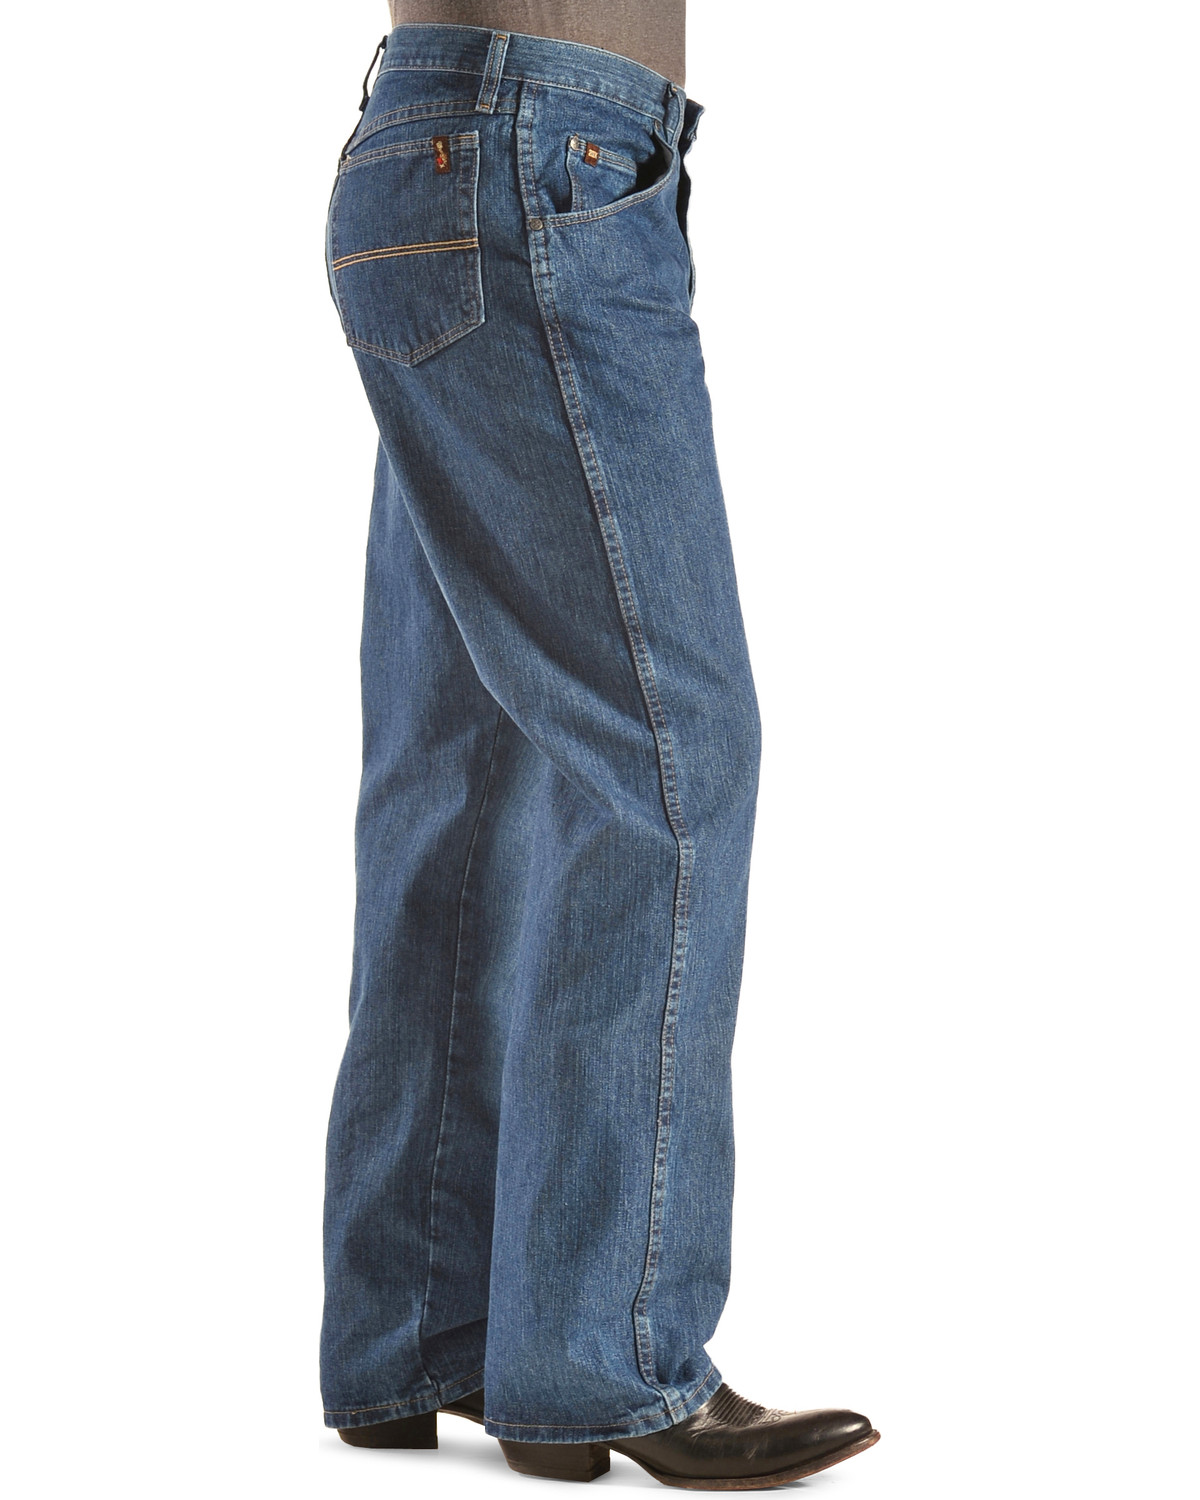 14b13d5a Wrangler 20X Men's No. 23 Relaxed Fit Jeans - Straight Leg , Indigo, hi